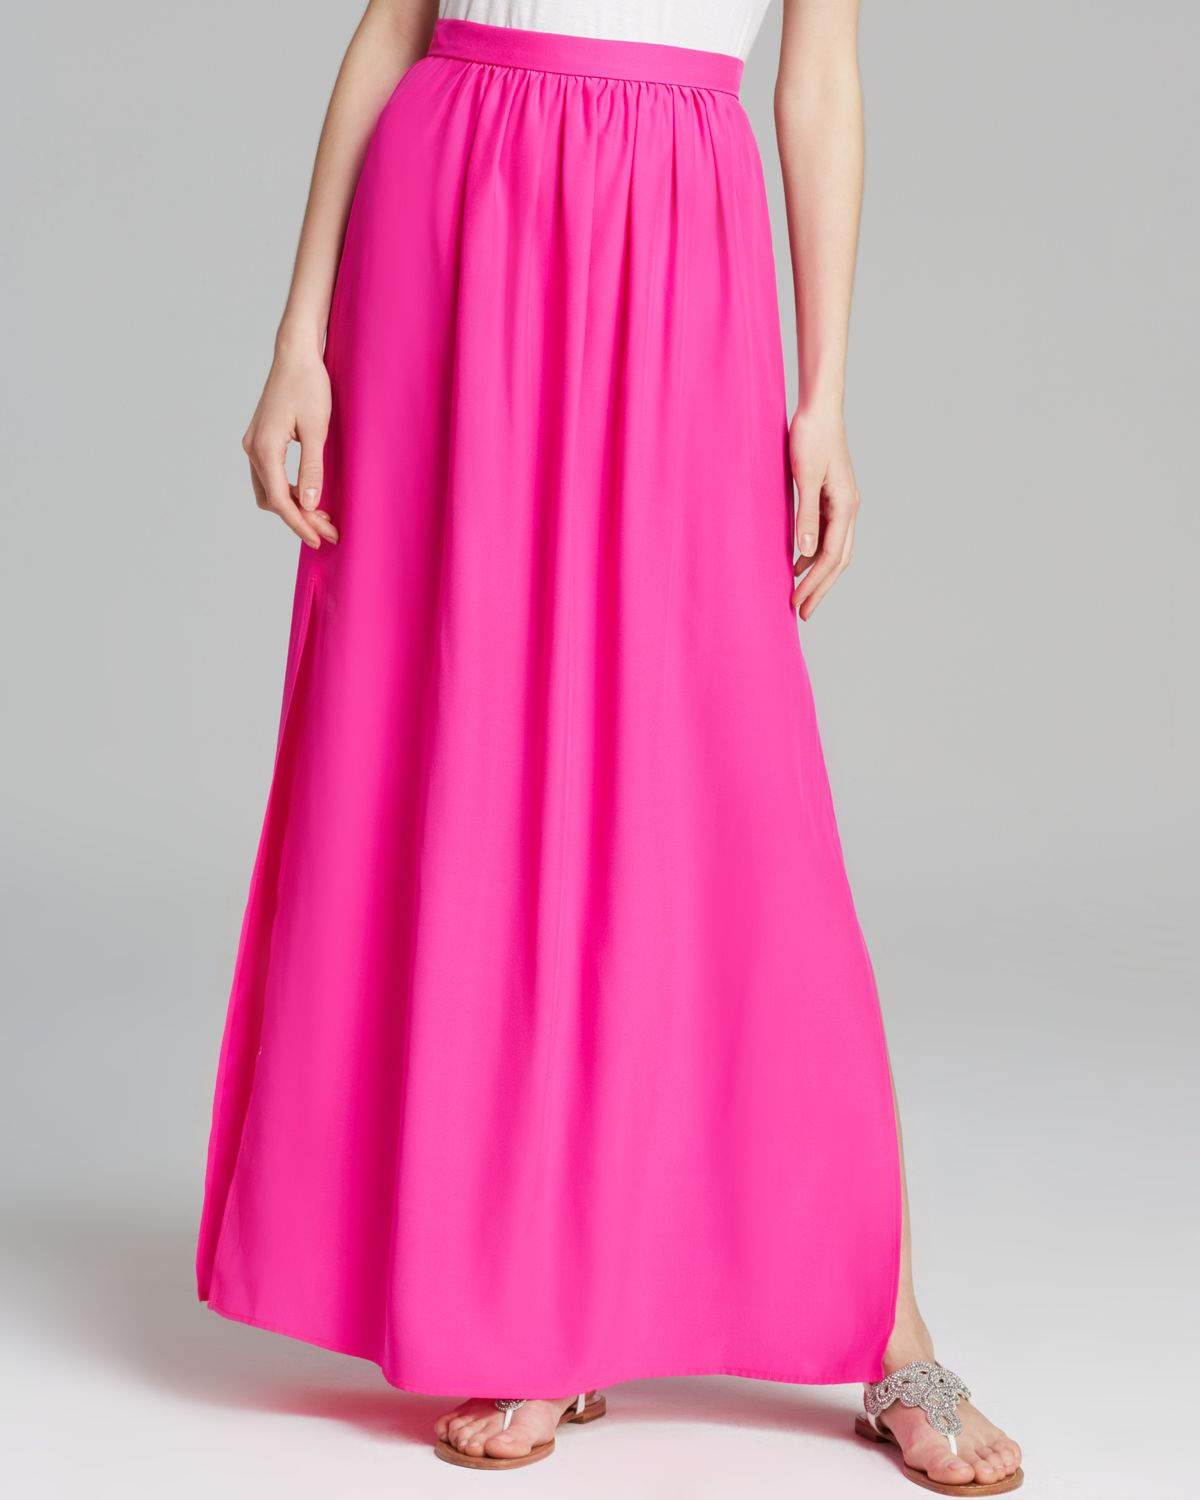 Amanda uprichard Maxi Skirt Slit Silk in Pink | Lyst